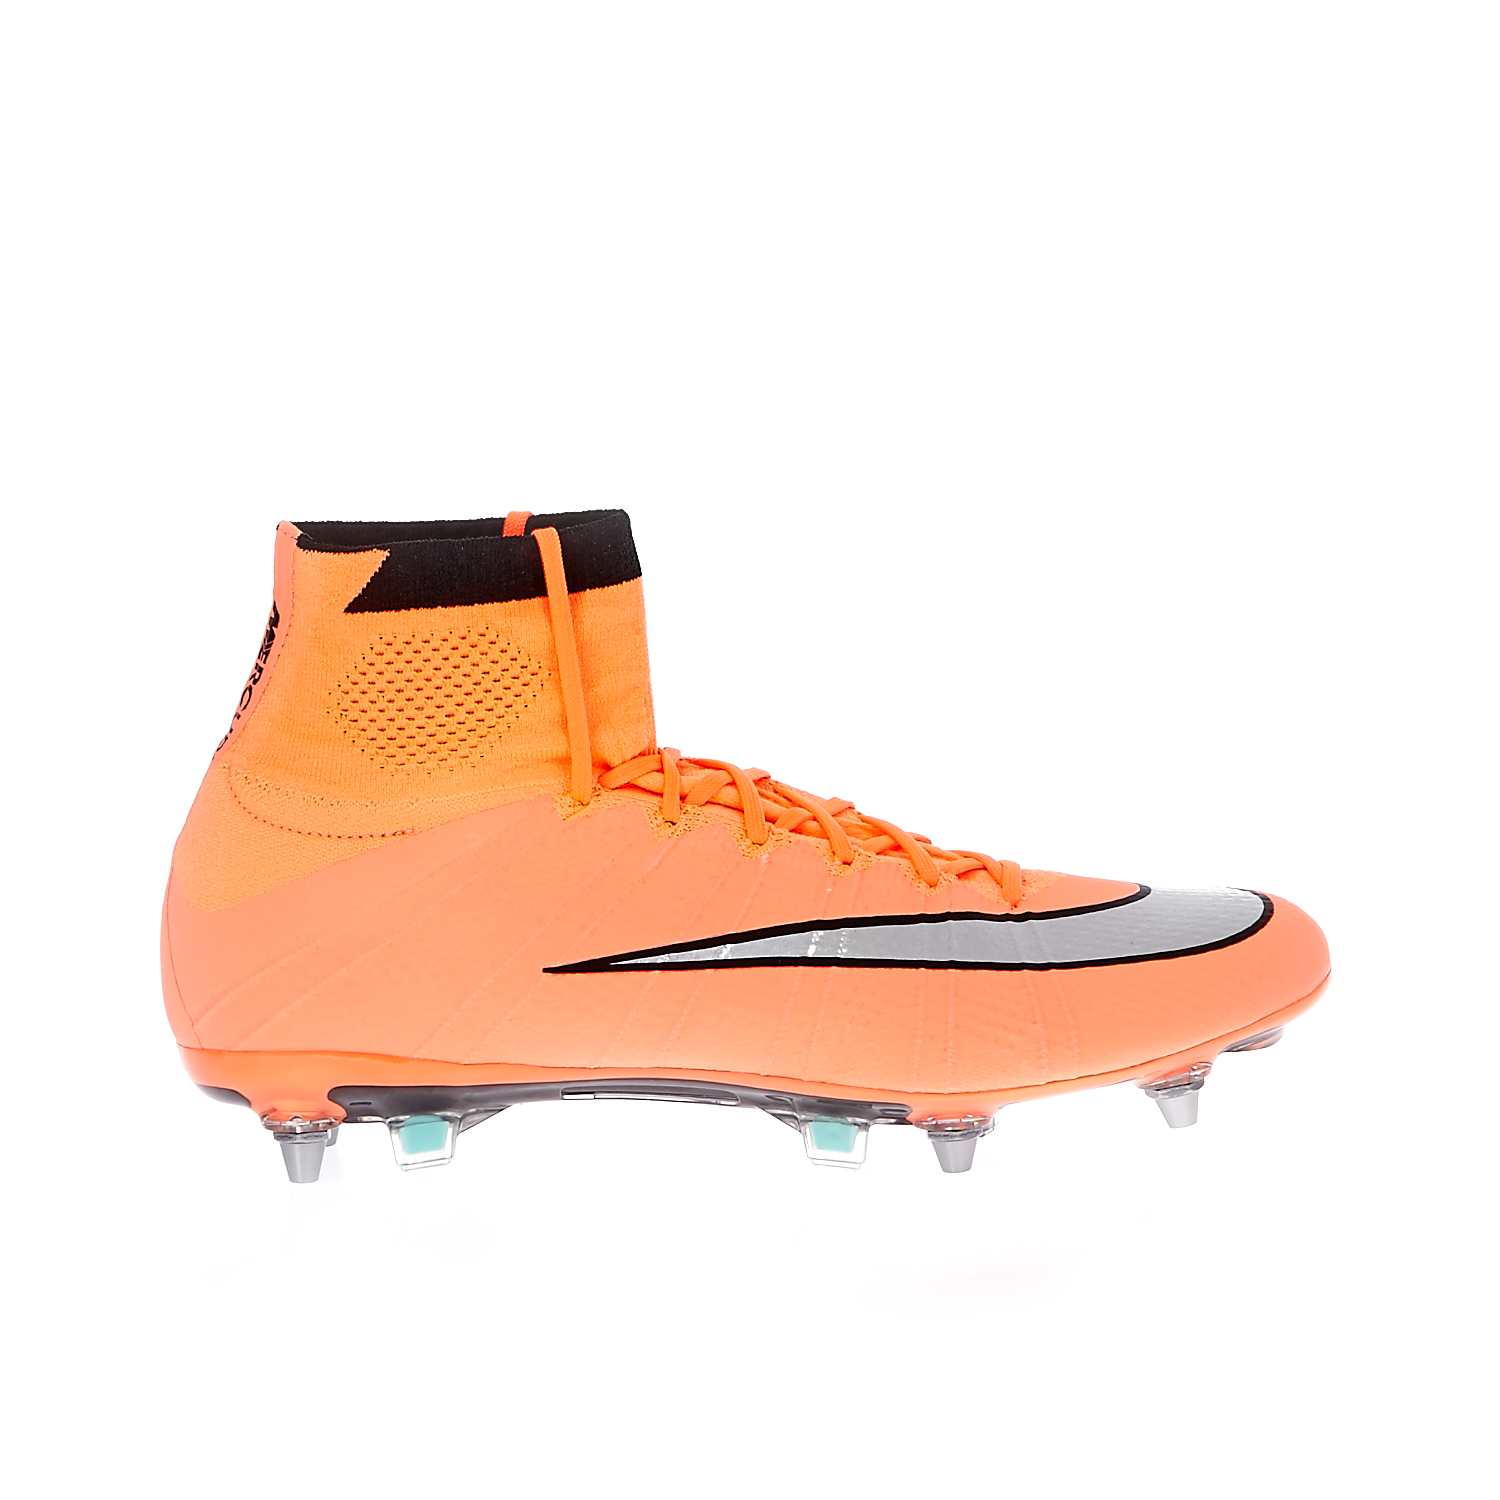 NIKE – Ανδρικά παπούτσια Nike MERCURIAL SUPERFLY SG-PRO πορτοκαλί